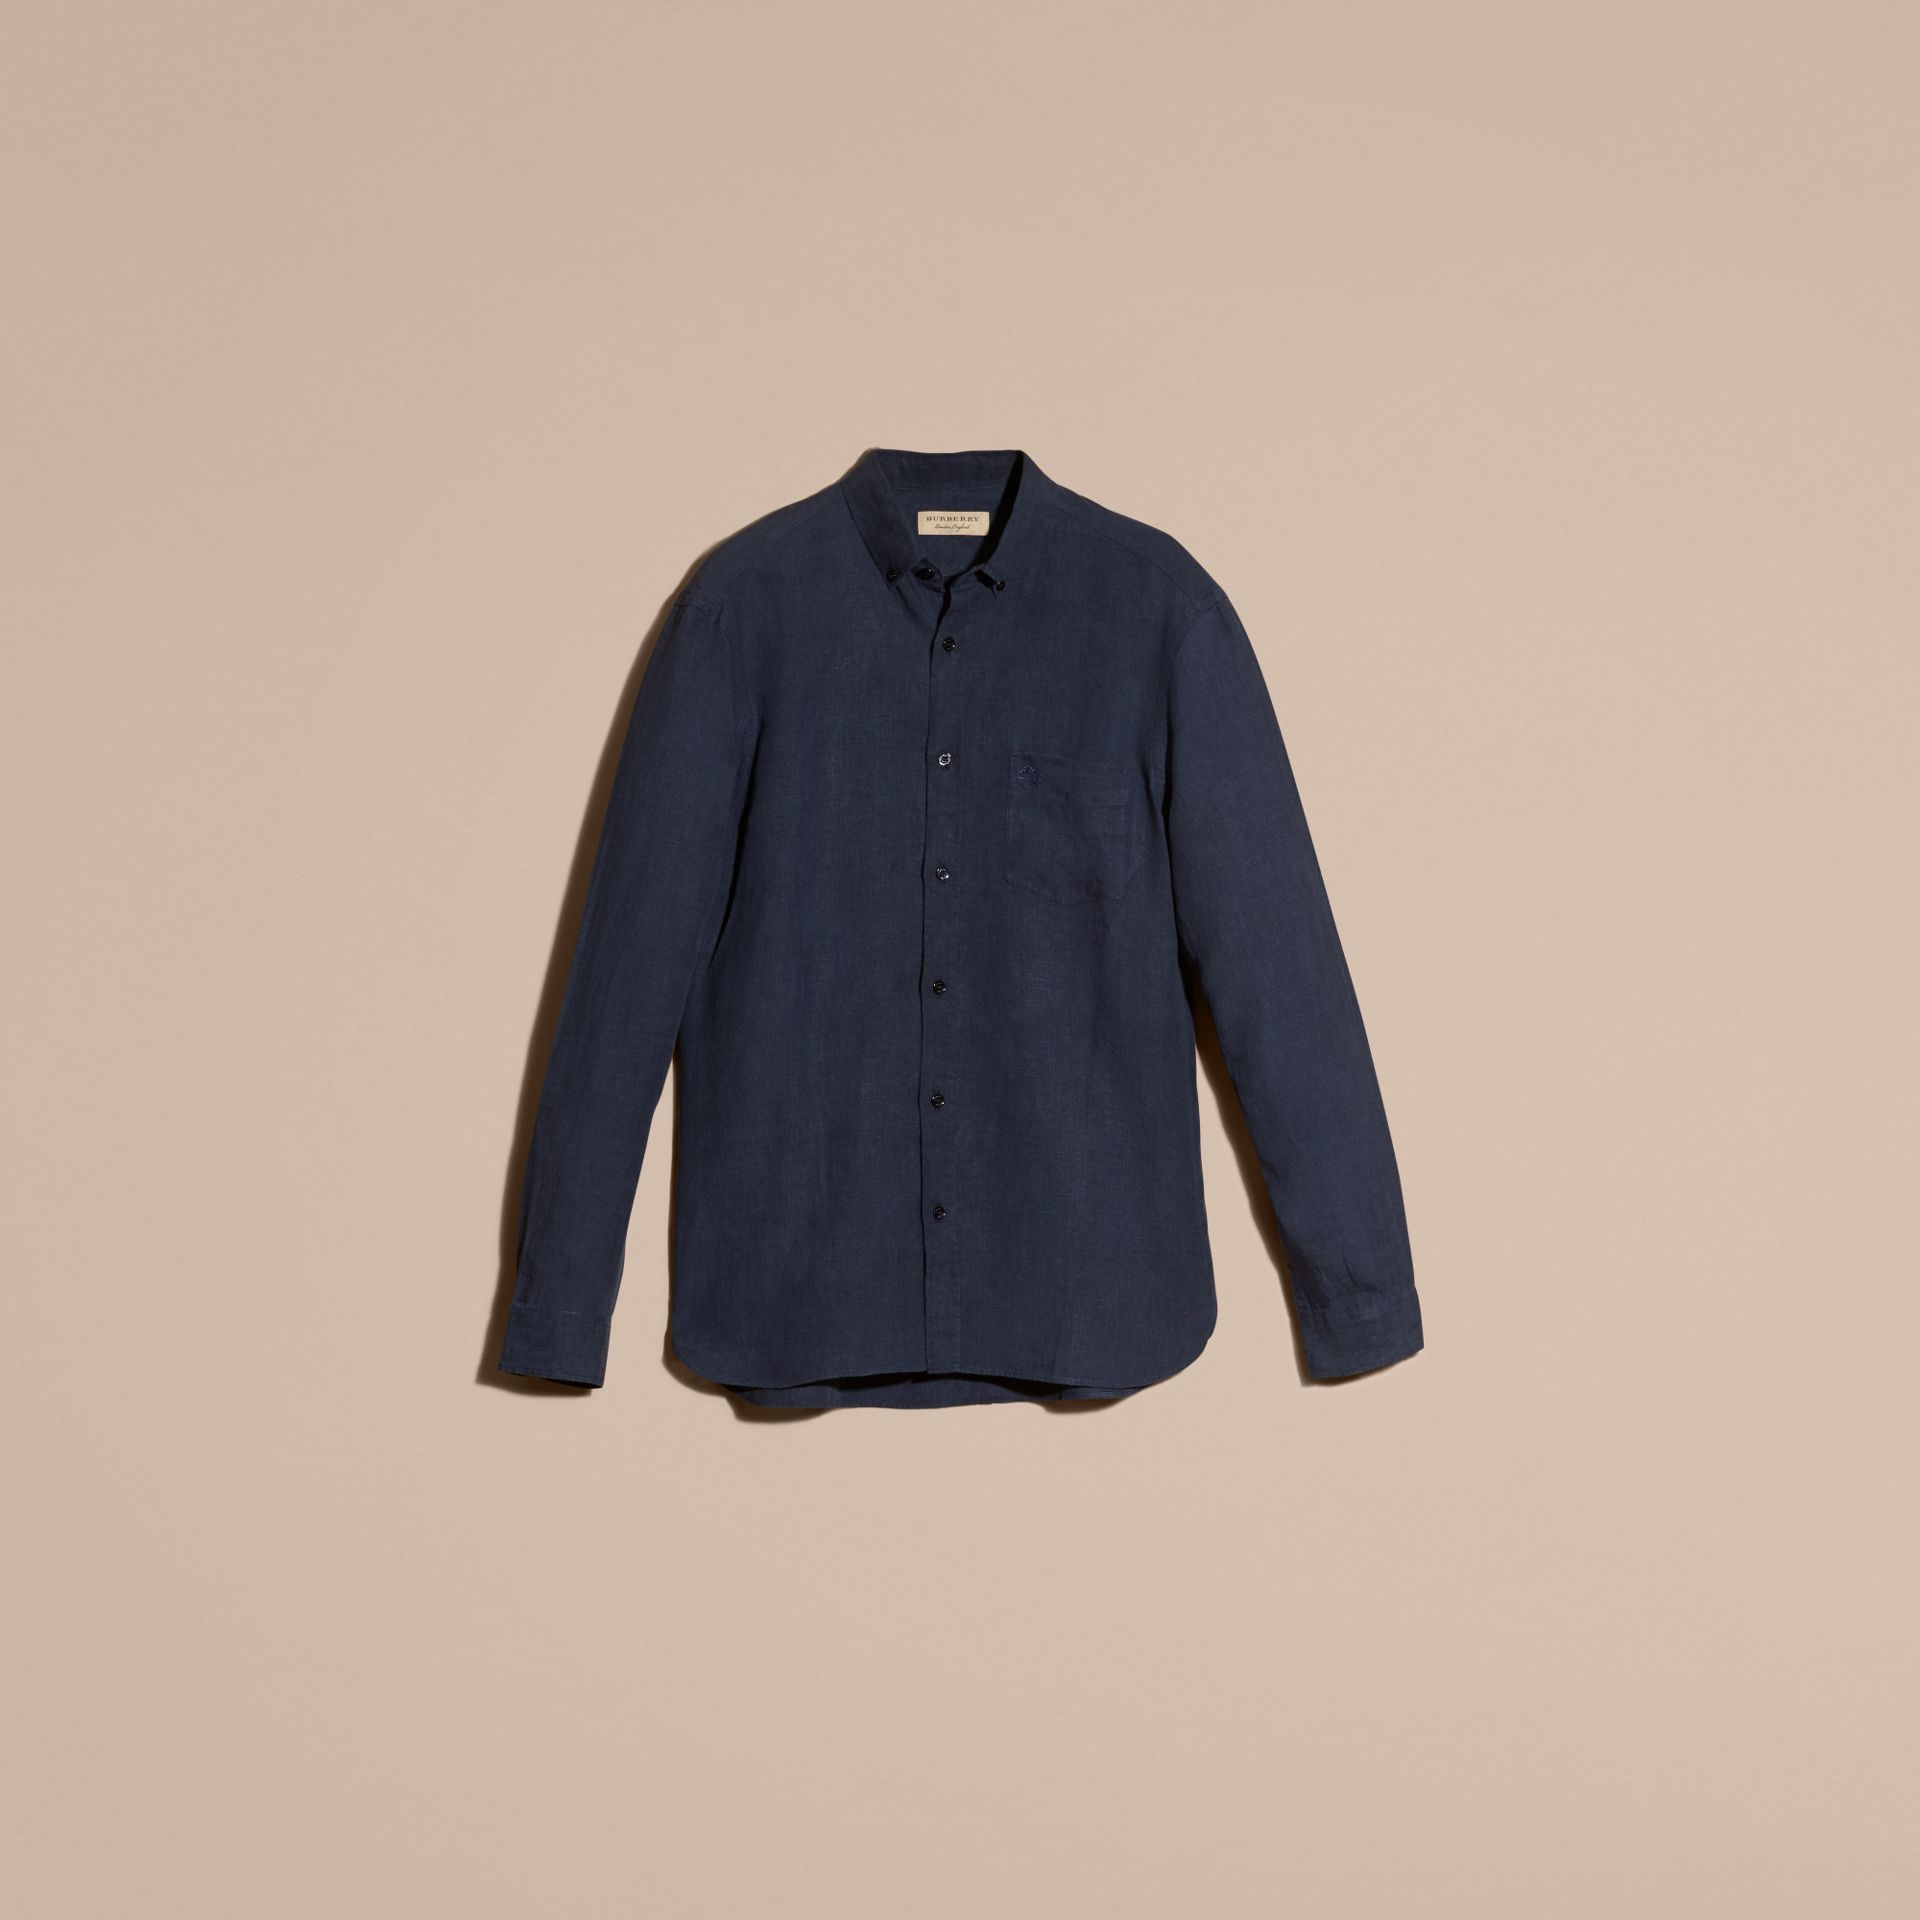 Navy Button-down Collar Linen Shirt Navy - gallery image 3